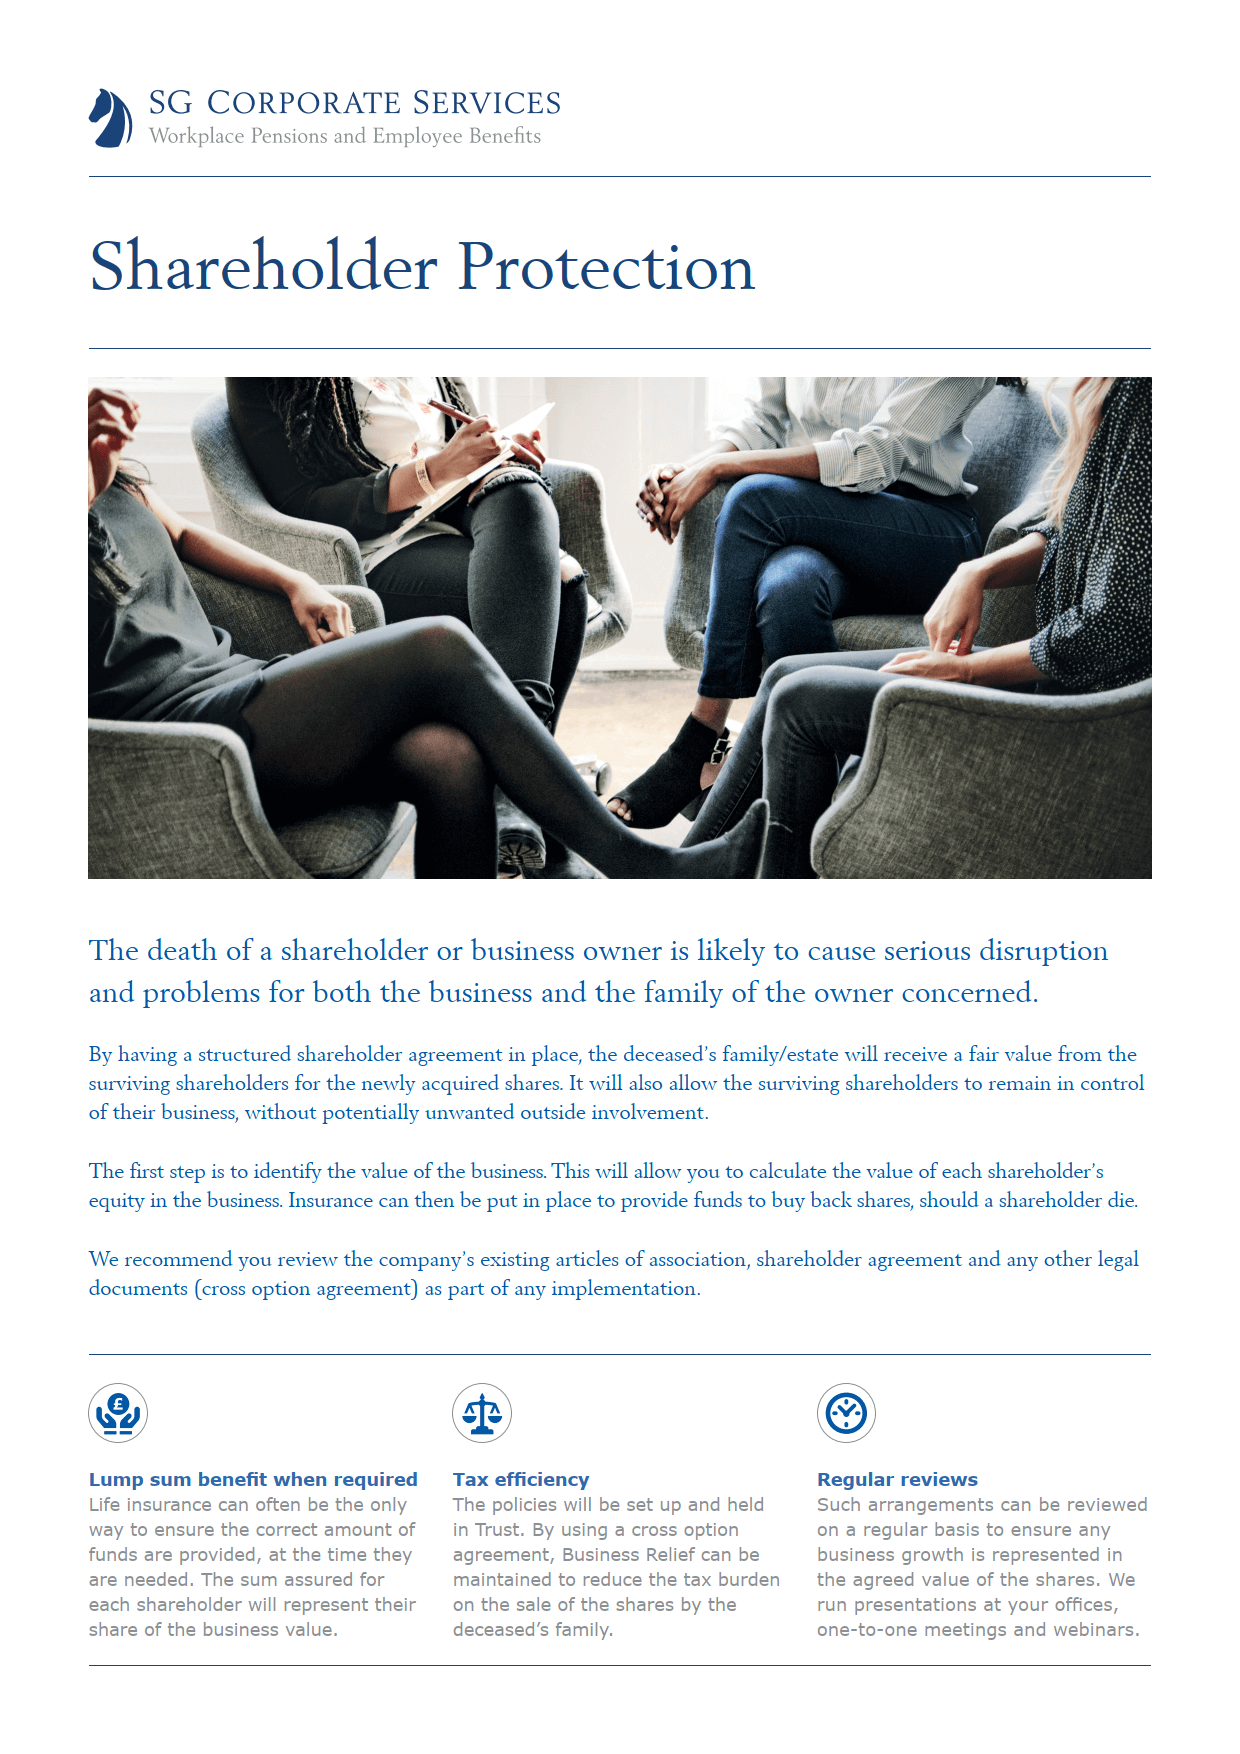 Product Guide - Shareholder Protection